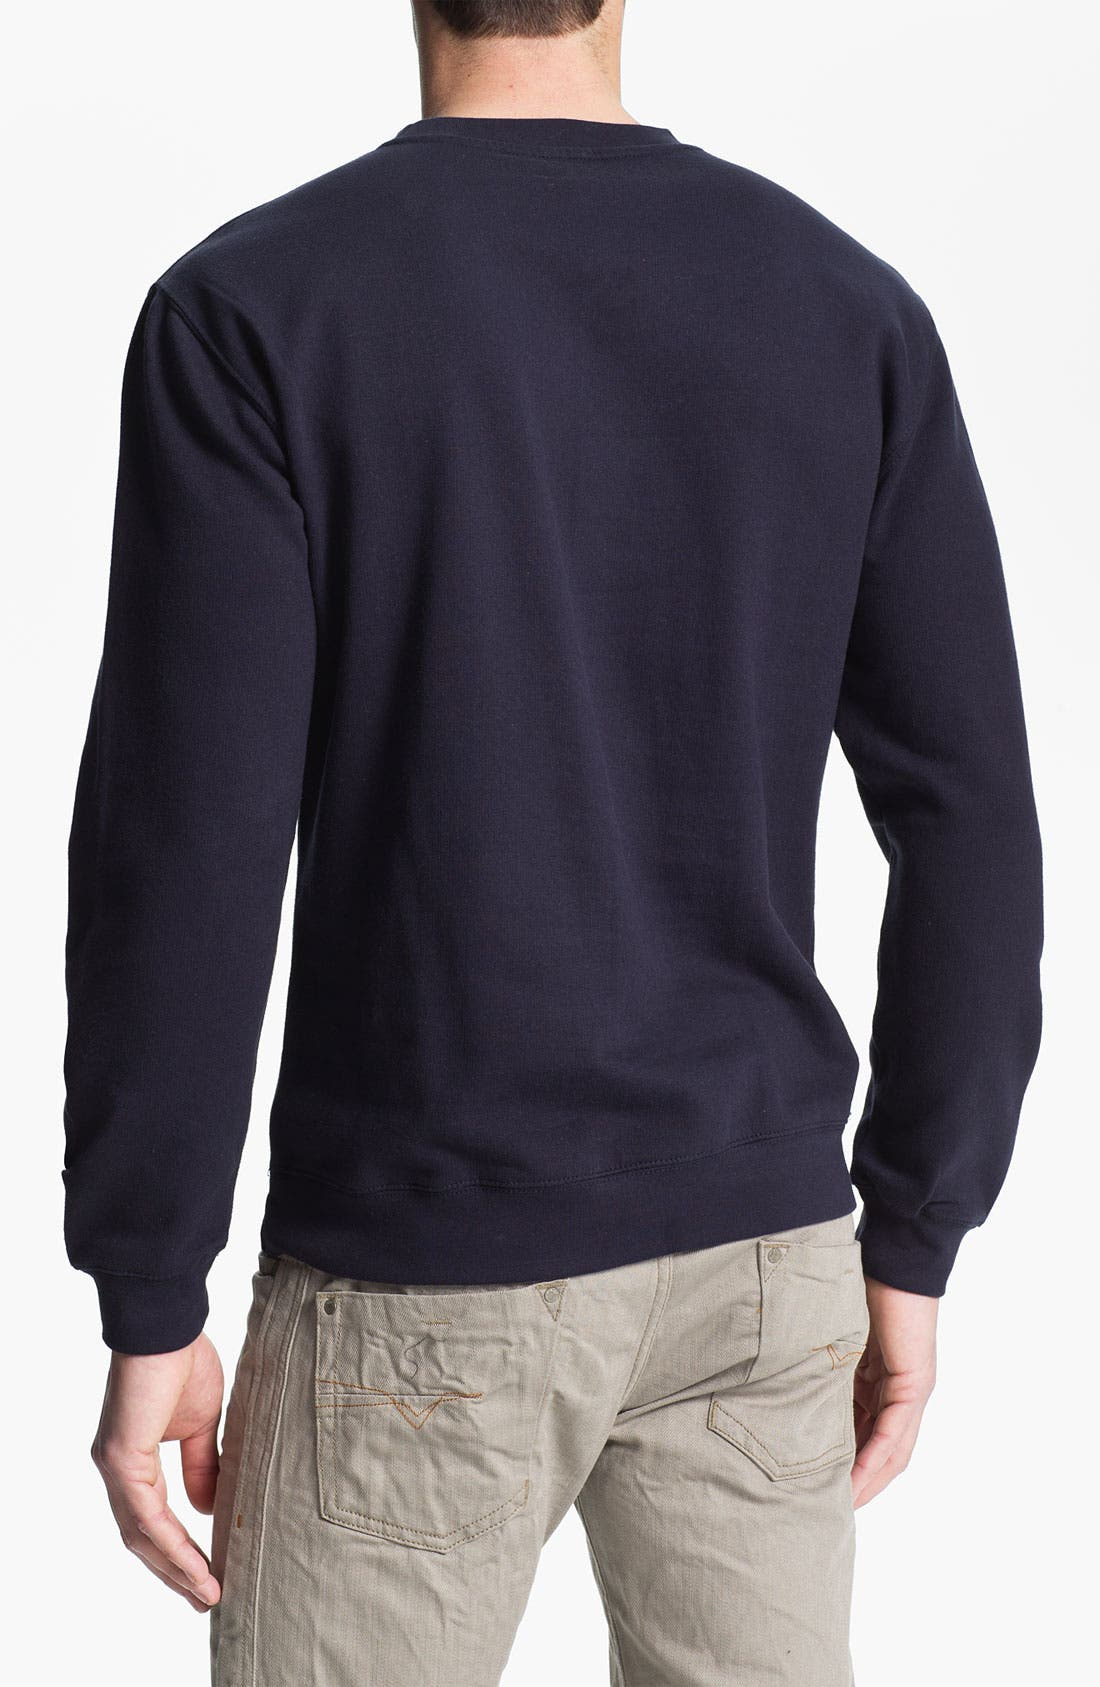 Alternate Image 2  - RVCA 'Korps' Graphic Crewneck Sweatshirt